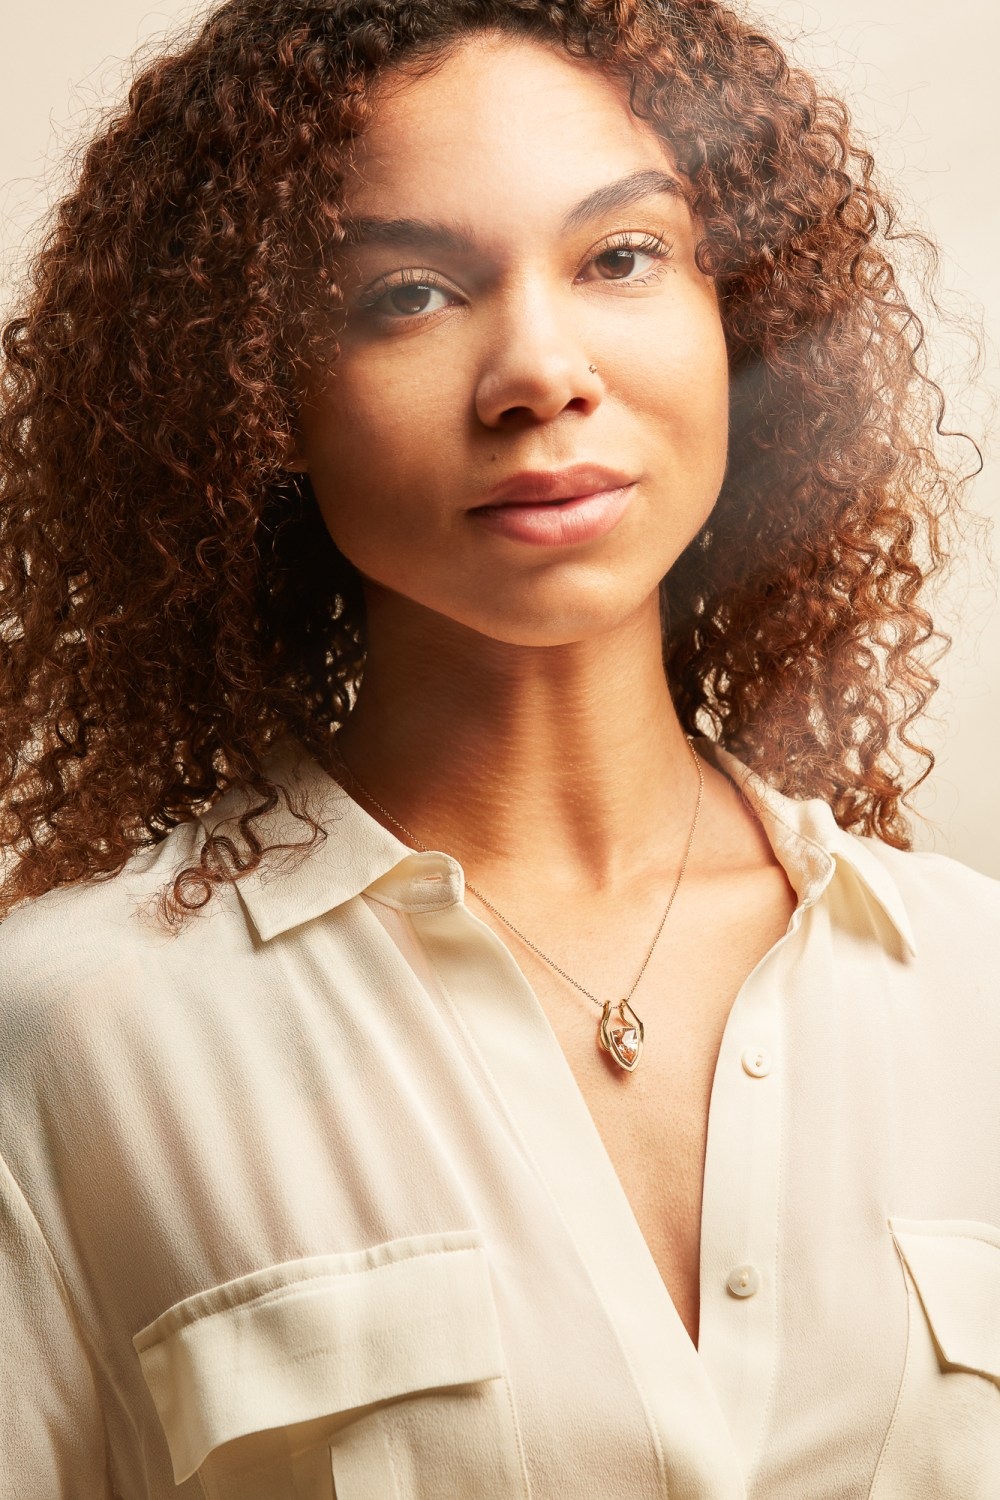 confident, empowered jewelry look book showing model with natural hair